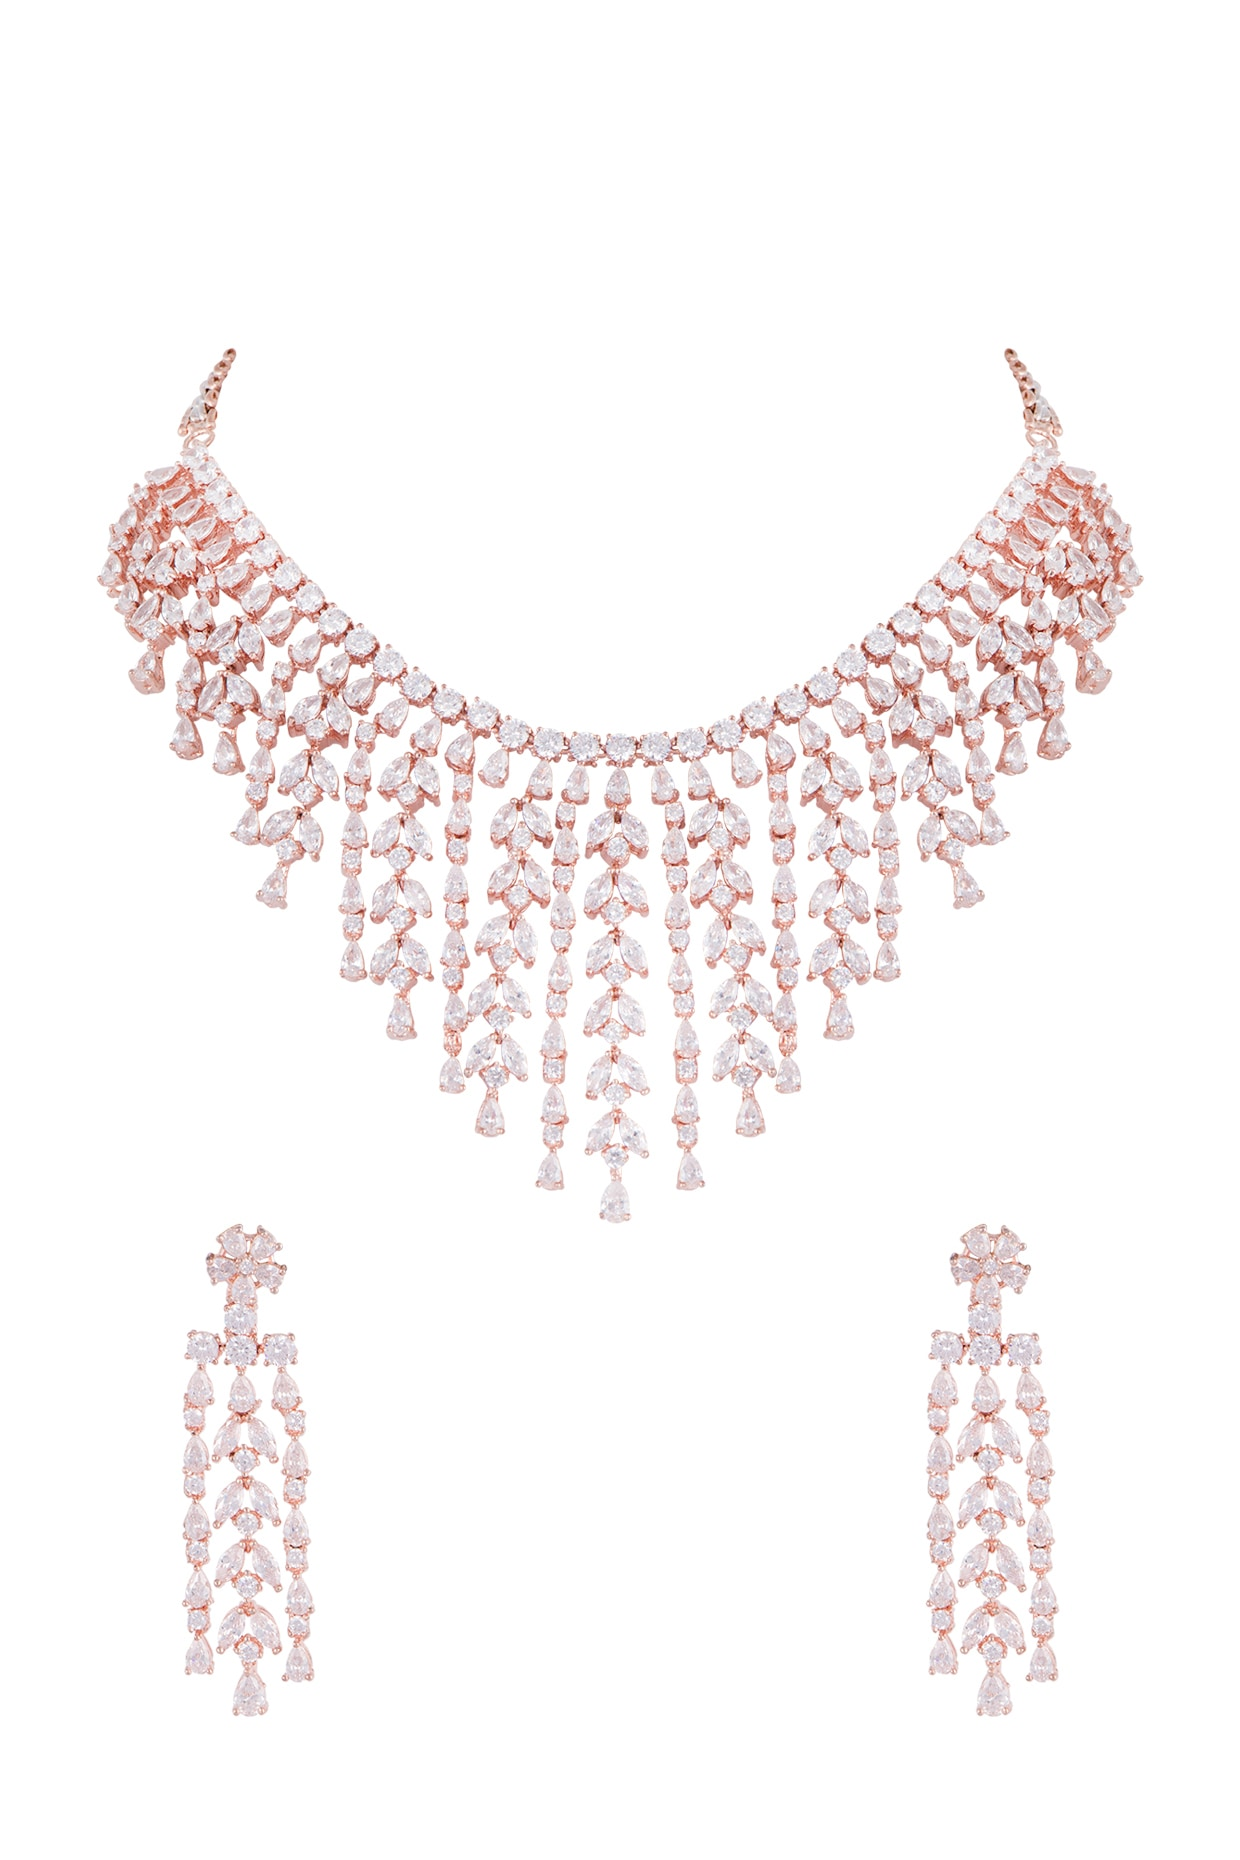 Rose Gold Finish Faux Diamond Necklace Set Design By Aster At Pernia S Pop Up Shop